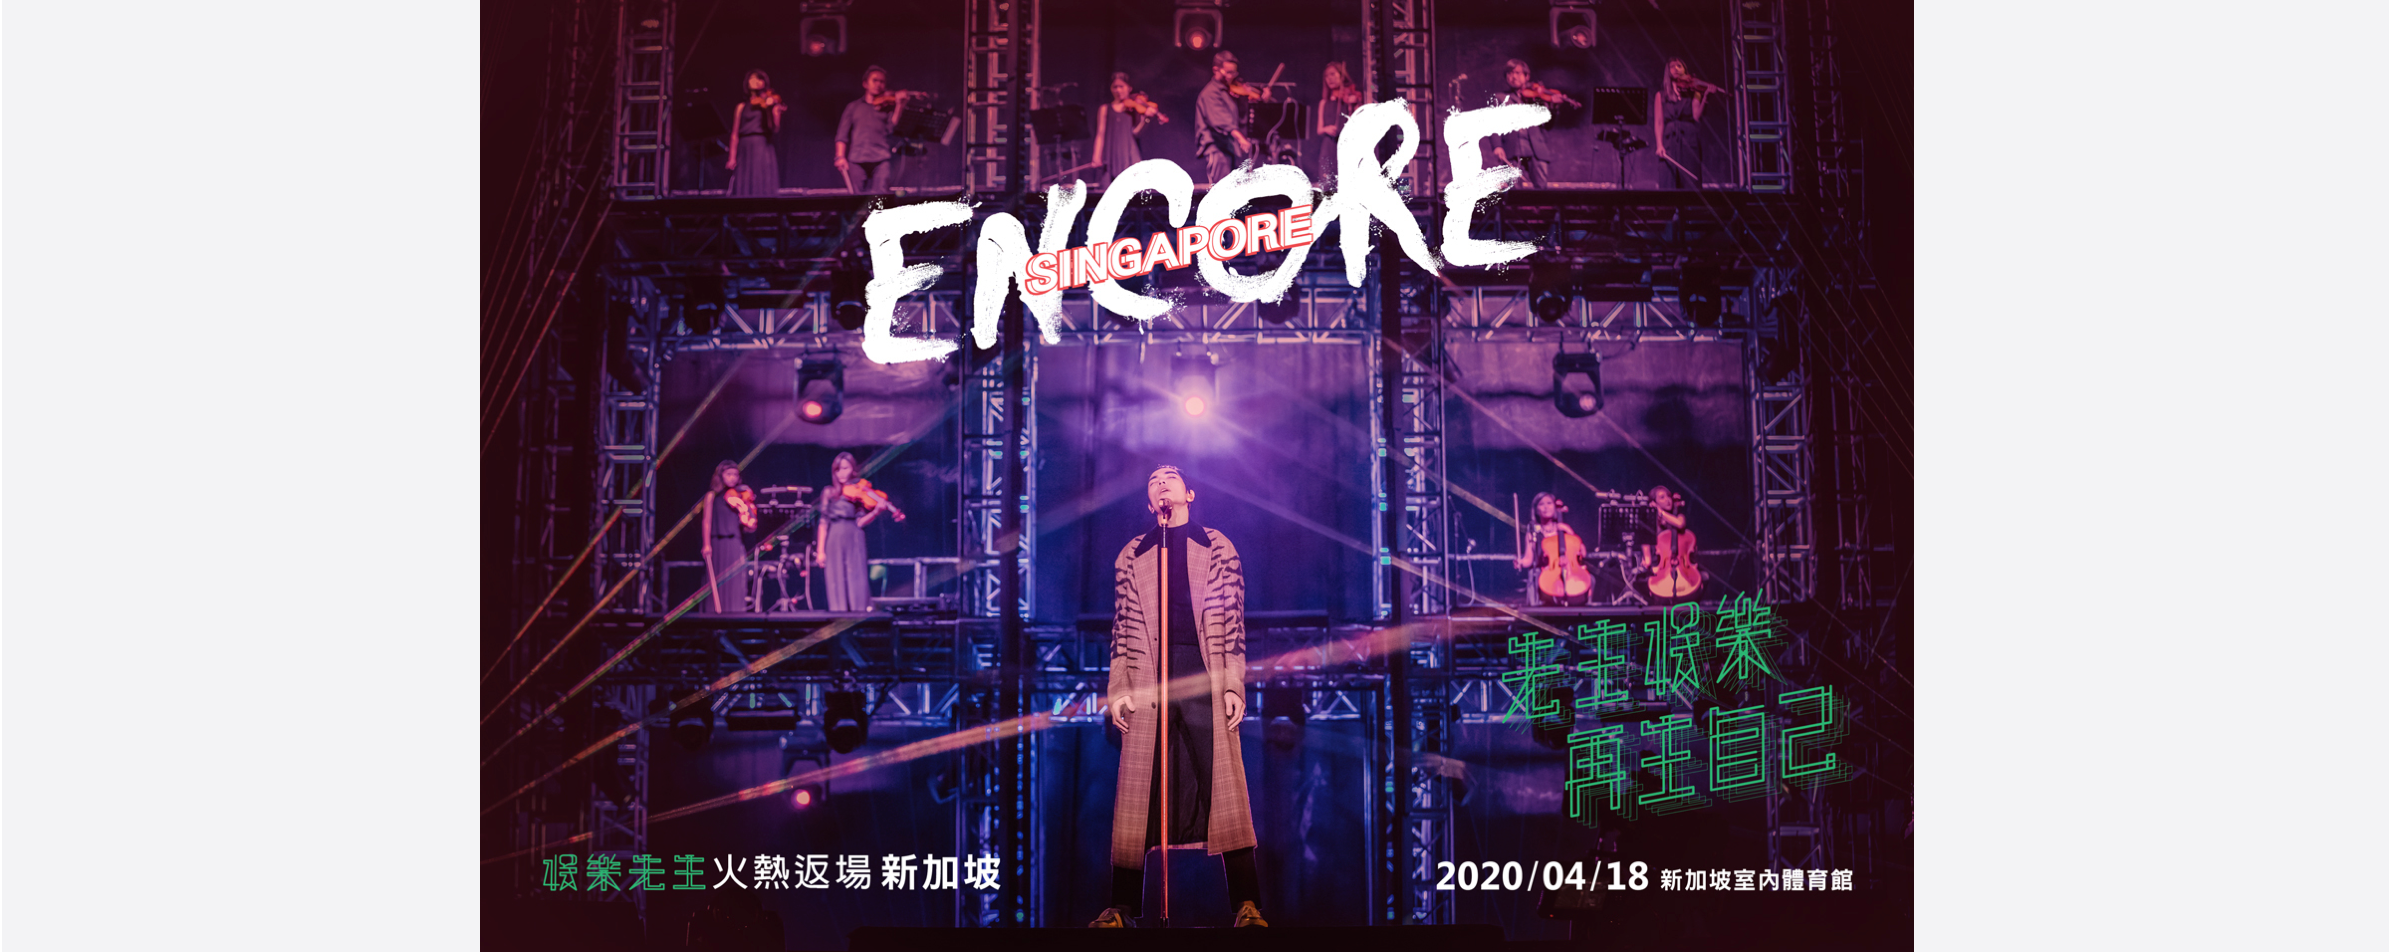 [CANCELLED] Jam Hsiao 'Mr. Entertainer' Encore Tour in Singapore